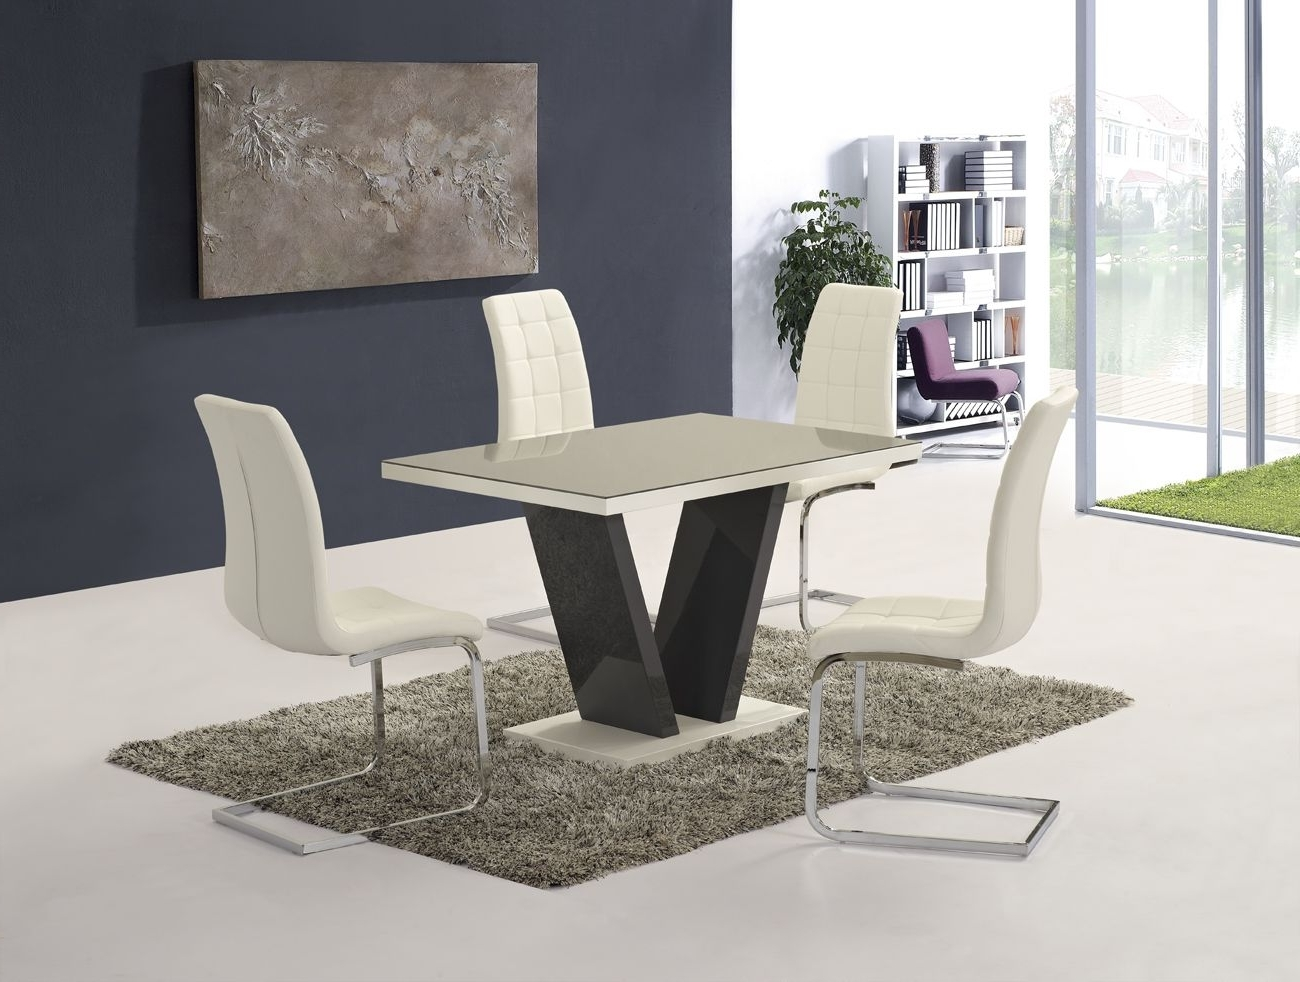 Recent Ga Vico High Gloss Grey Glass Top Designer 120 Cm Dining Set & 4 In Cream High Gloss Dining Tables (View 22 of 25)